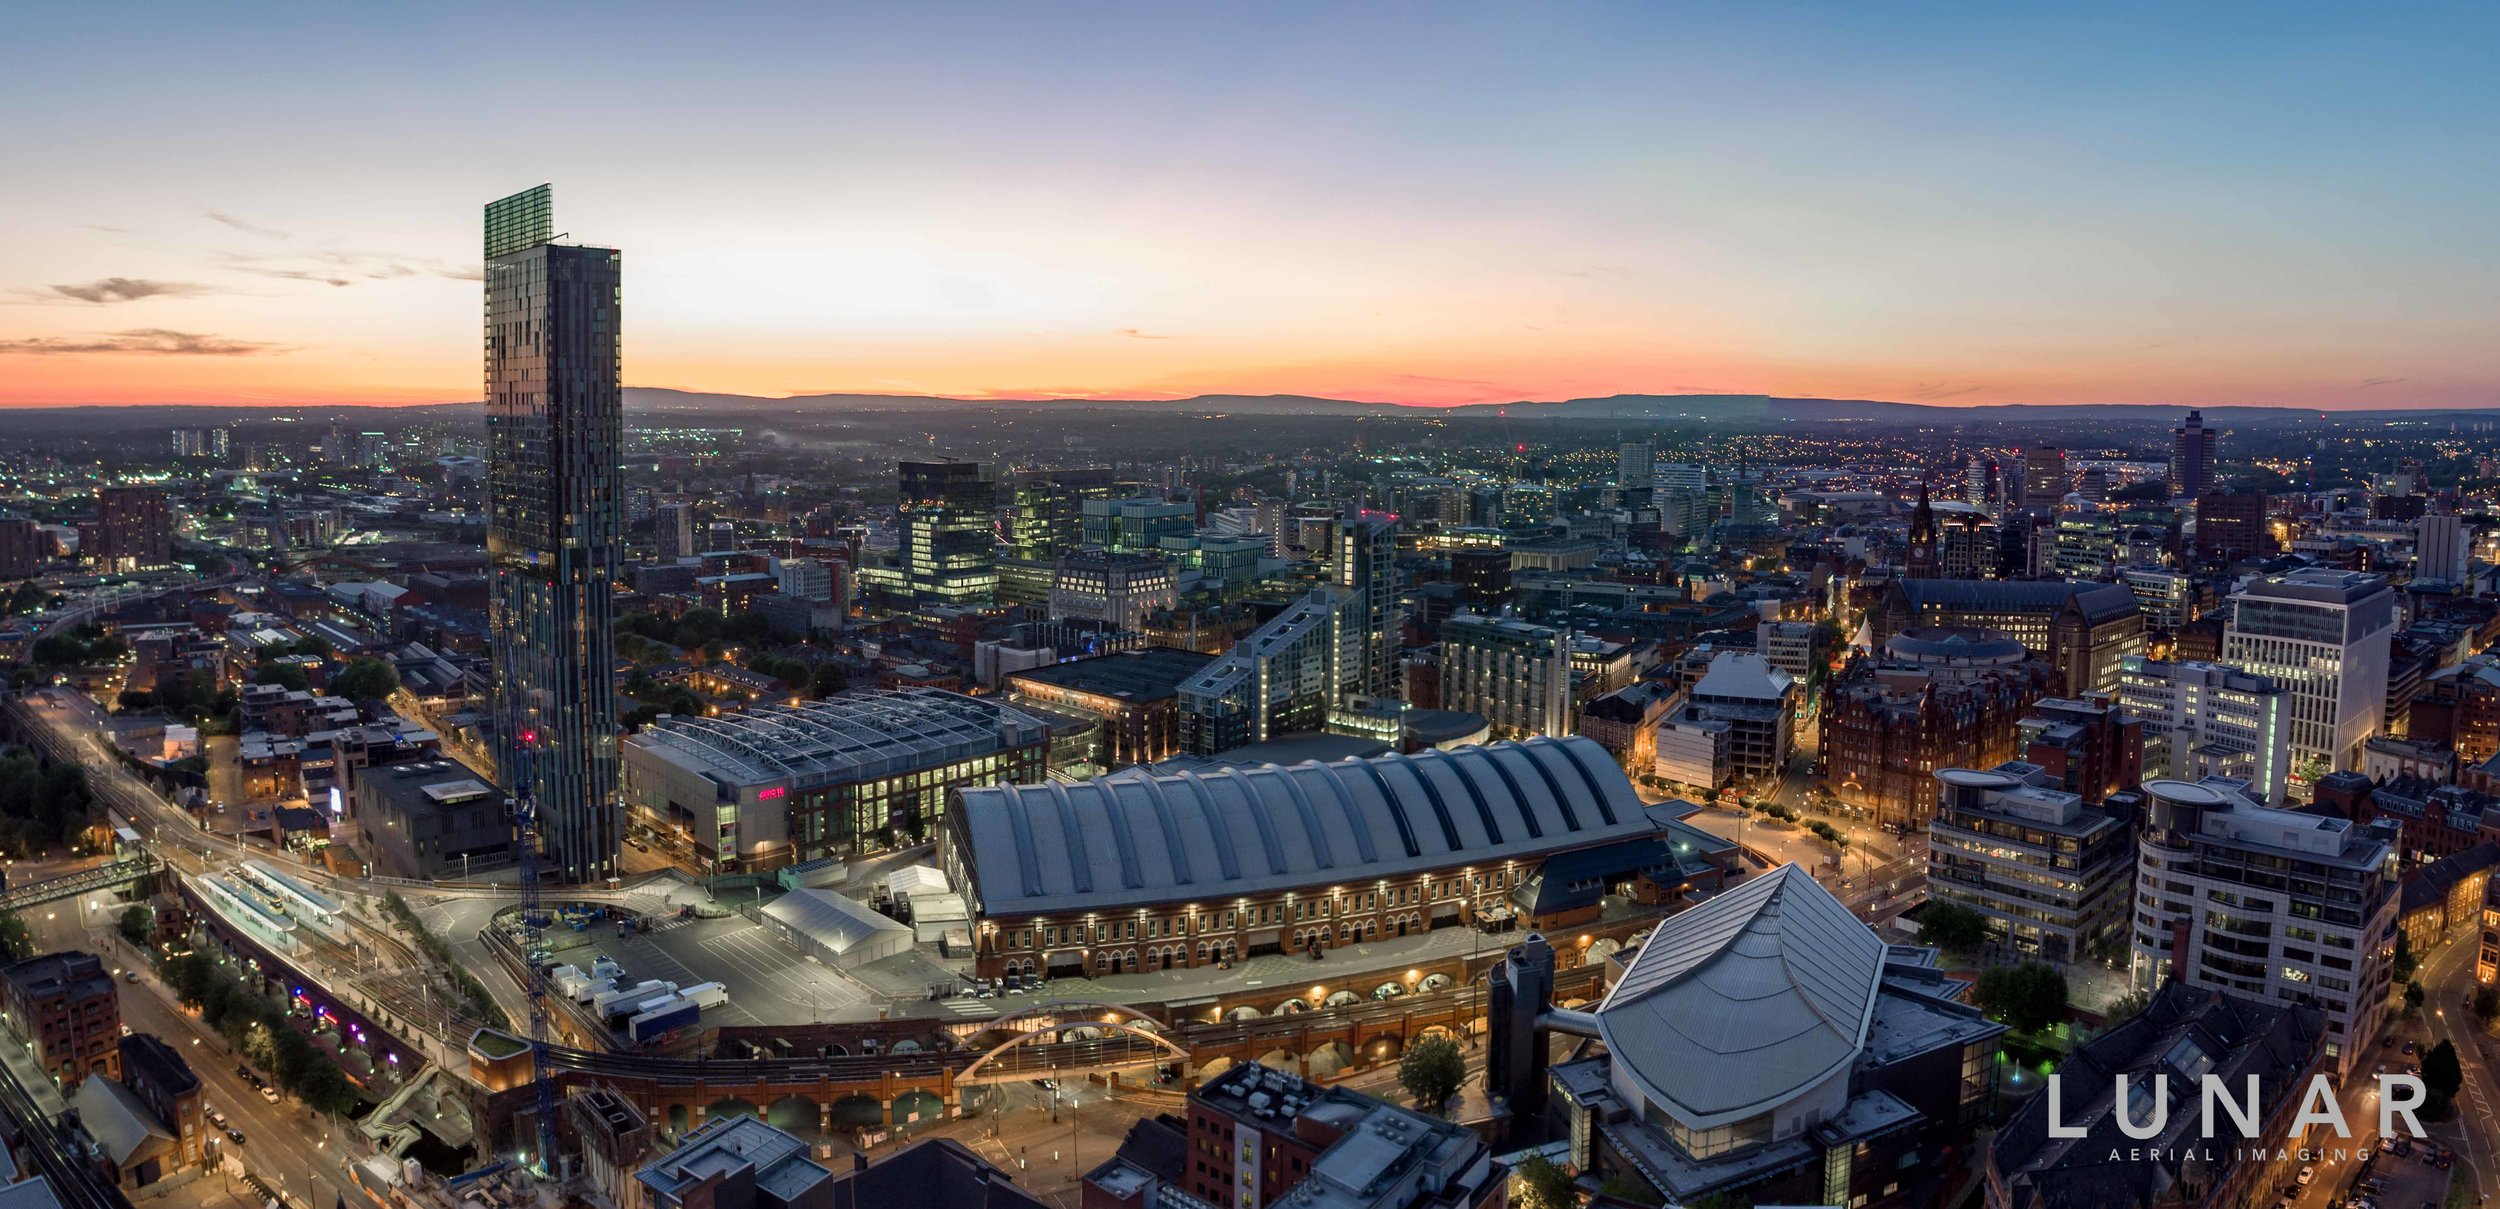 panorama Manchester at dusk drone photo.jpg